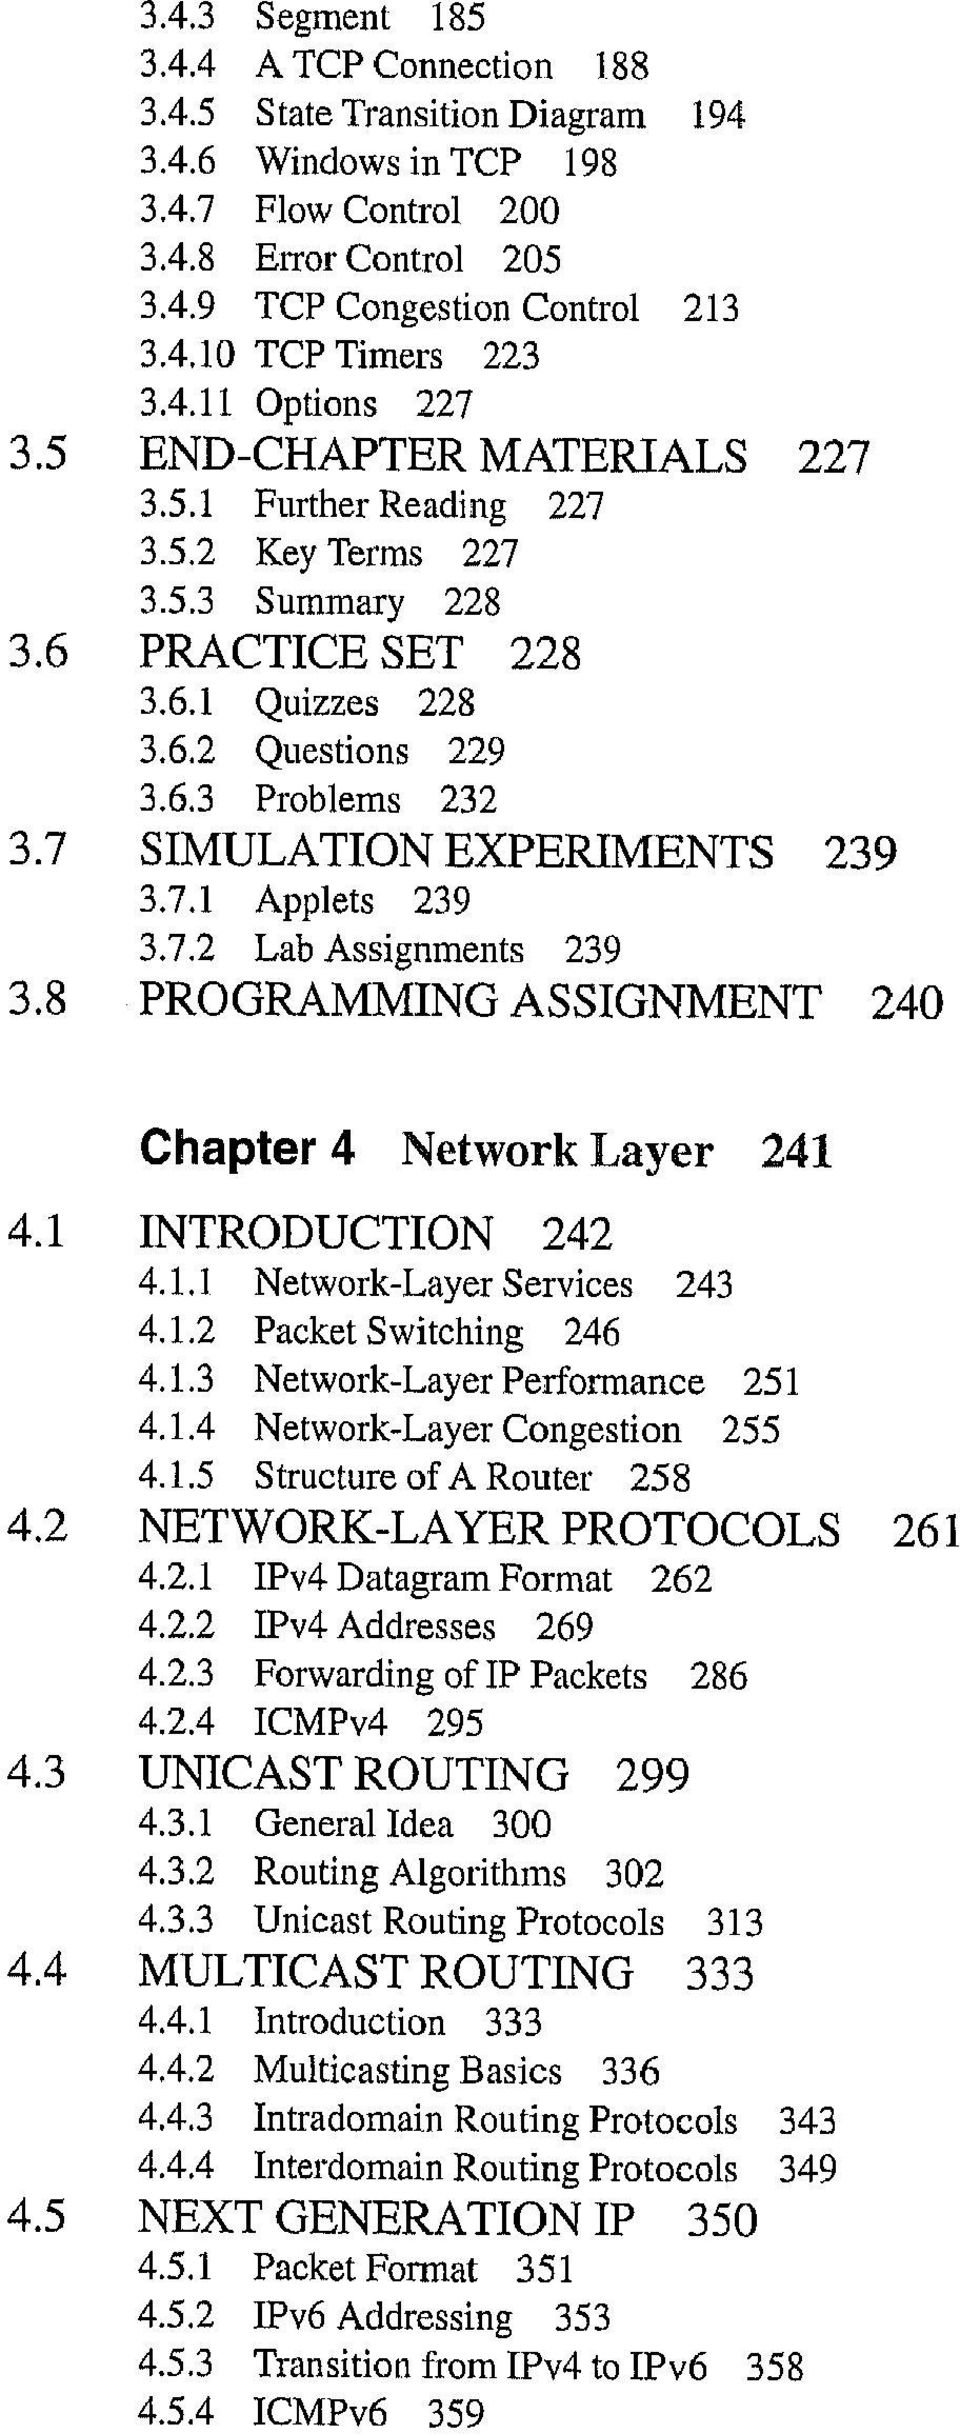 7 SIMULATION EXPERIMENTS 239 3.7.1 Applets 239 3.7.2 Lab Assignments 239 3.8 PROGRAMMING ASSIGNMENT 240 Chapter 4 Network Layer 241 4.1 INTRODUCTION 242 4.1.1 Network-Layer Services 243 4.1.2 Packet Switching 246 4.